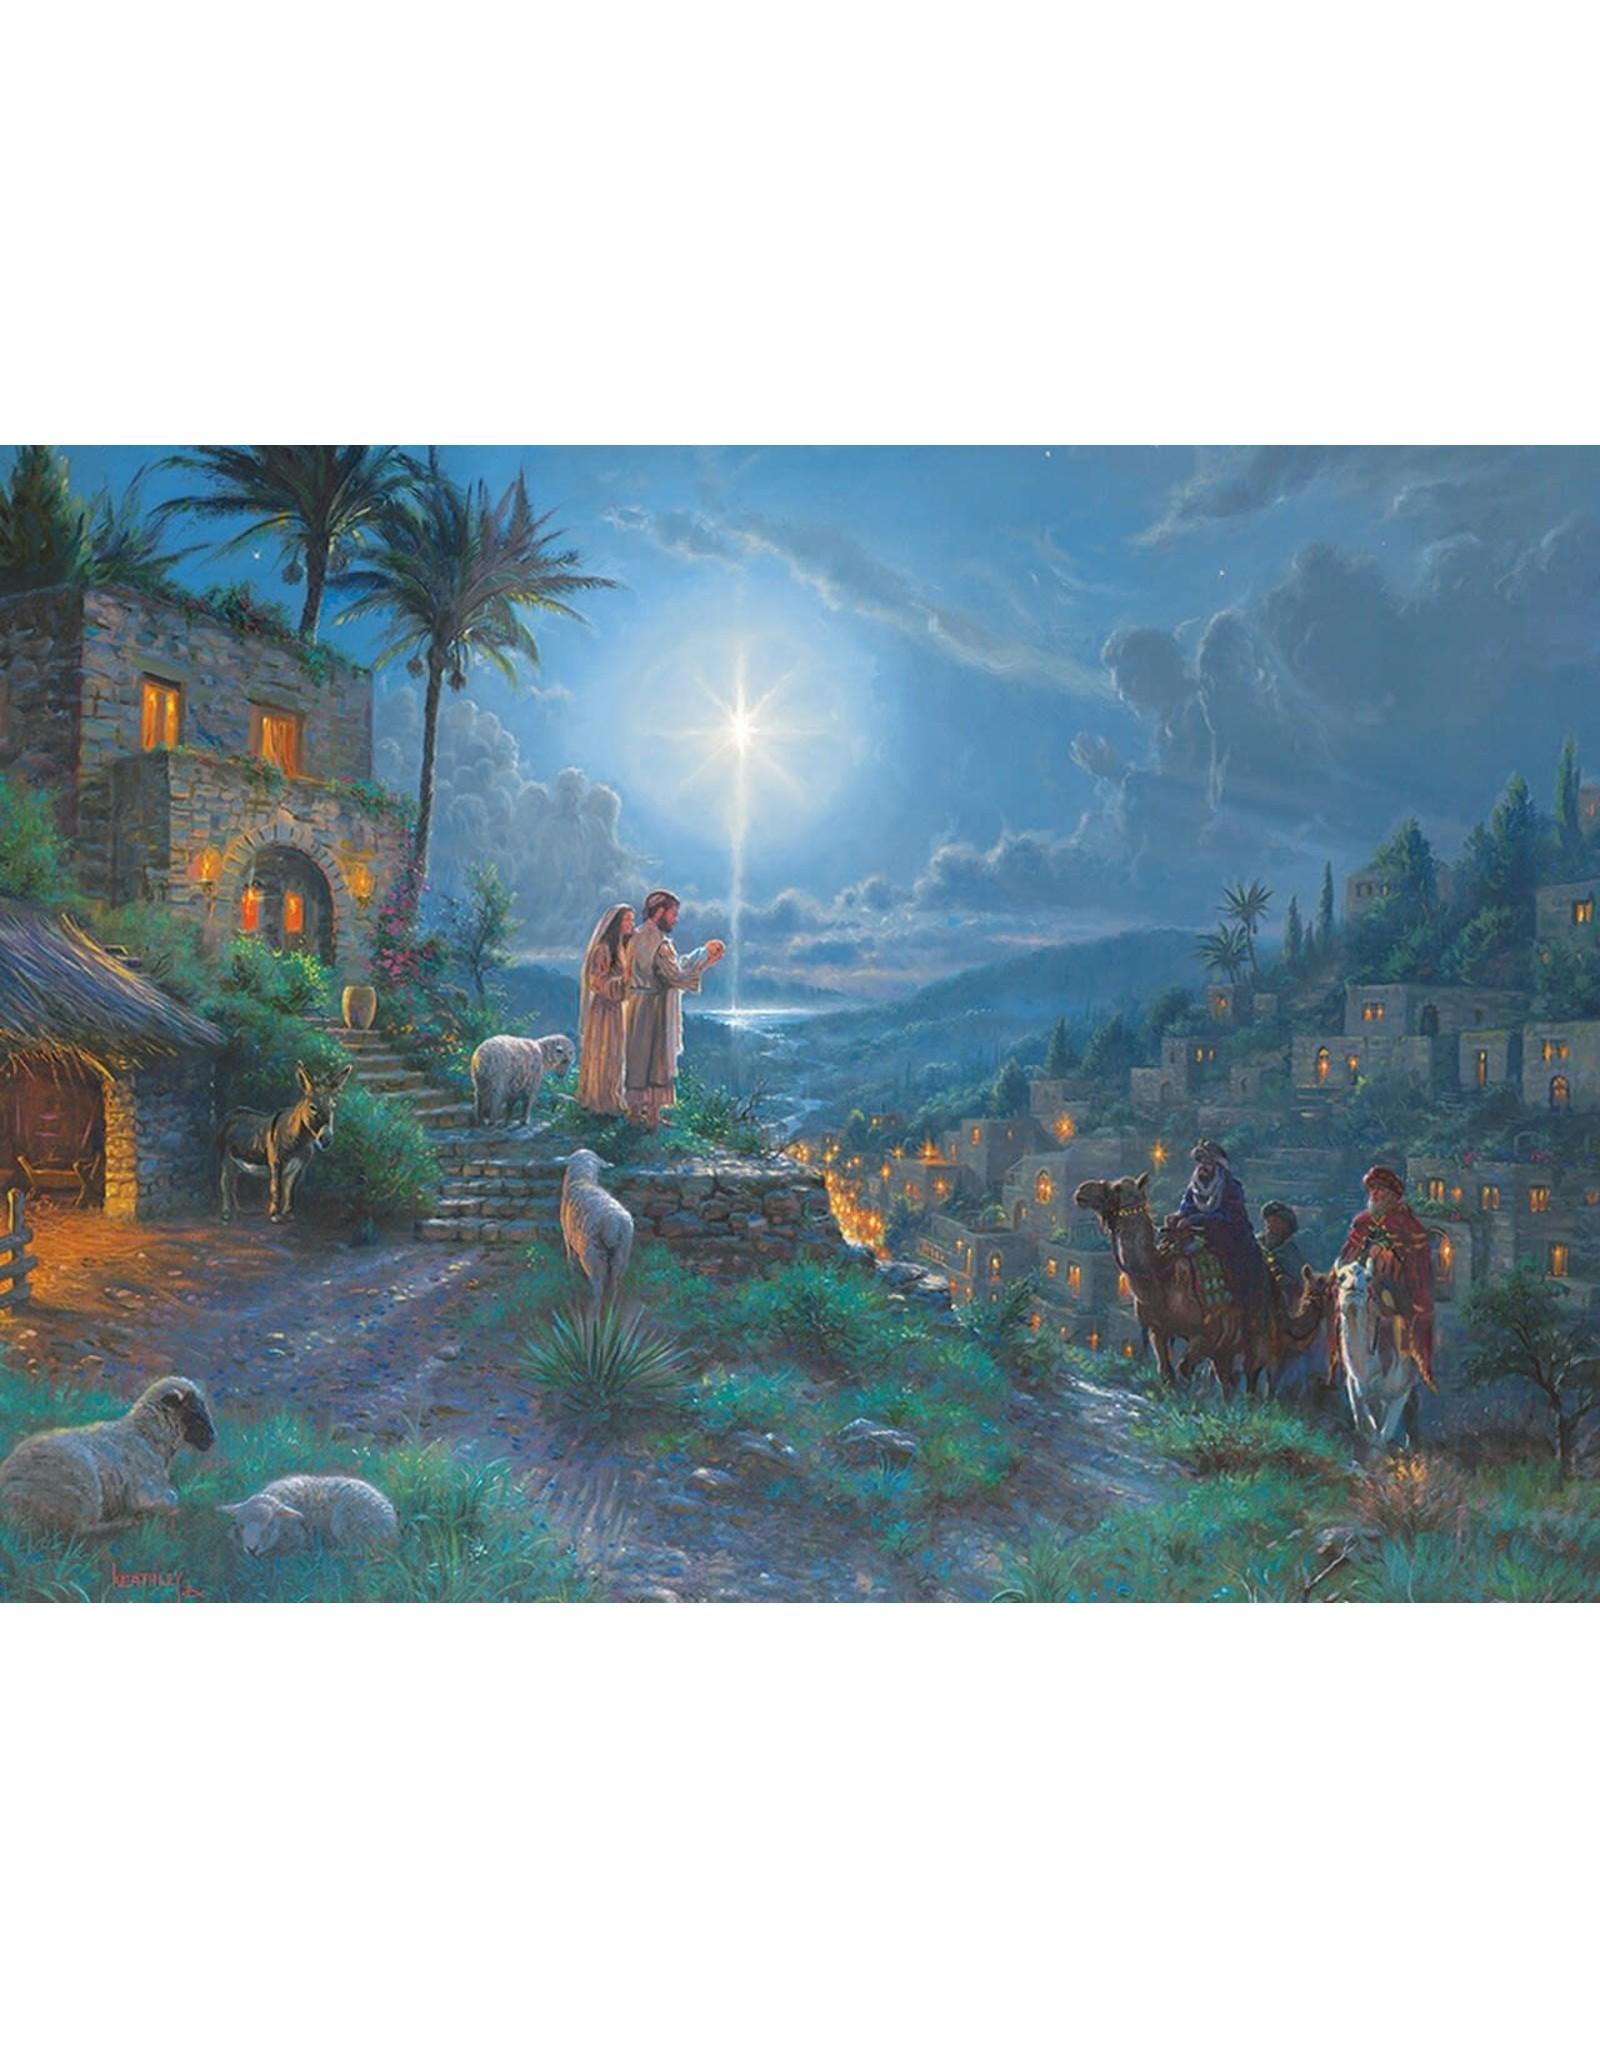 Arrival of the Magi - 1000pc Jigsaw Puzzle by Cobble Hill